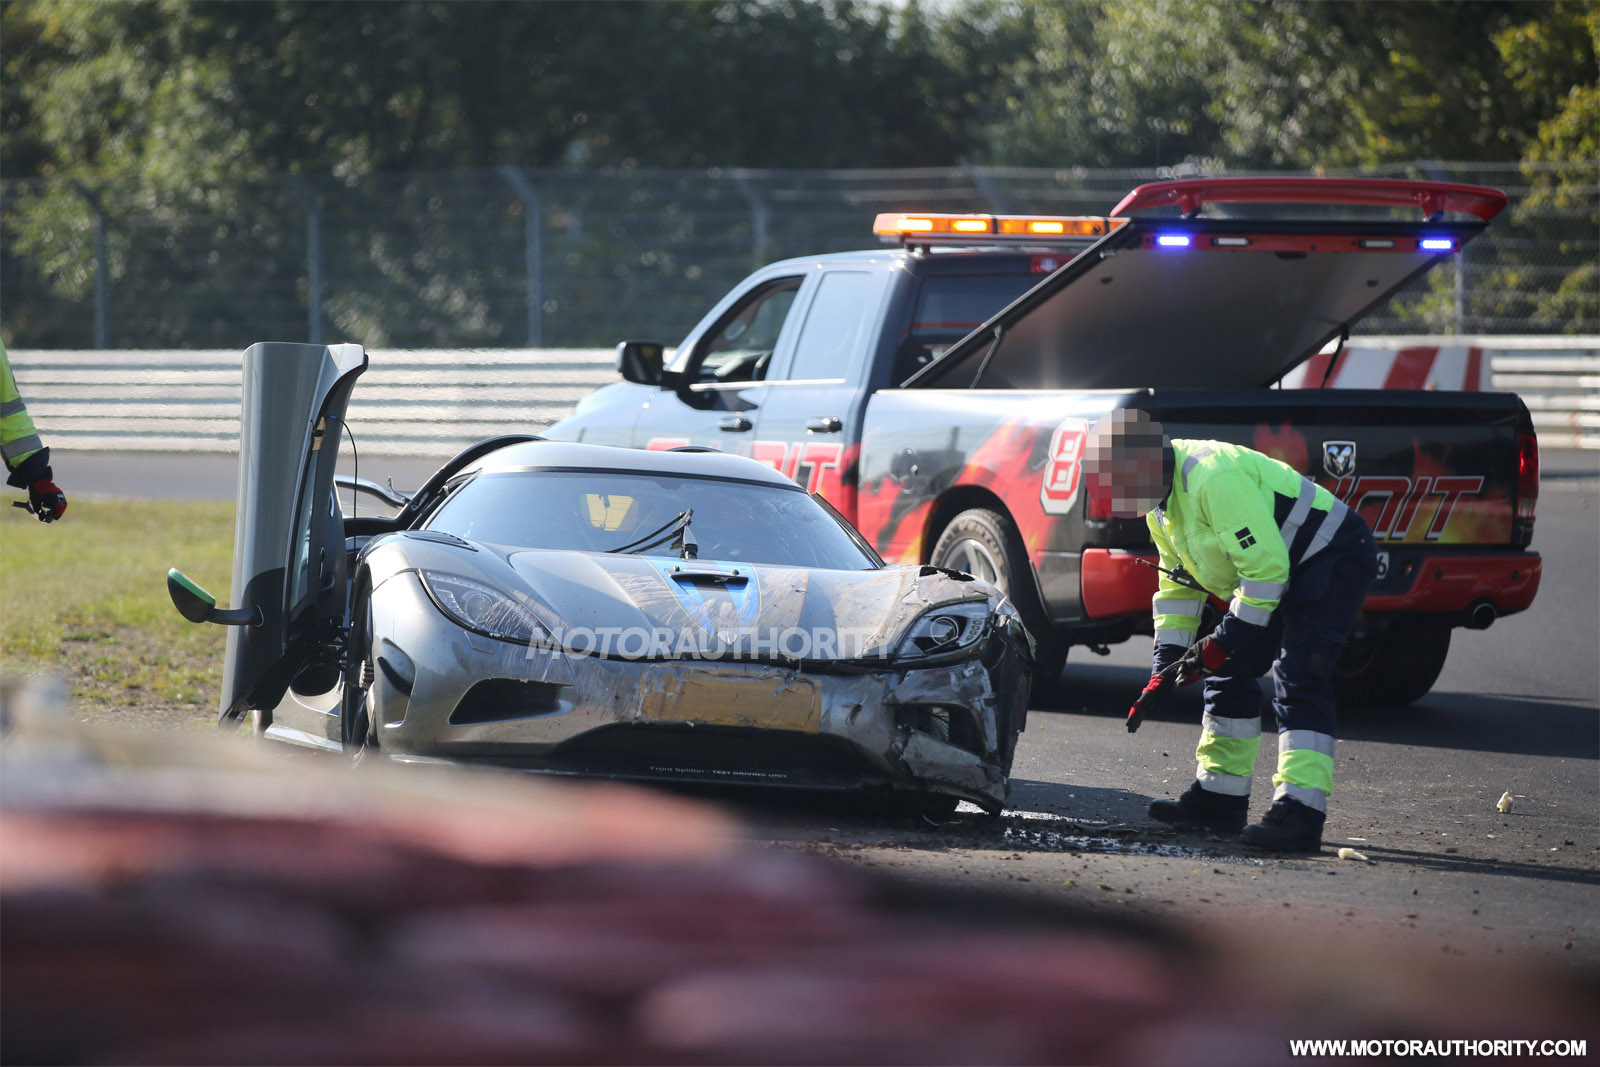 2016 Koenigsegg Agera R Development Prototype Crashed On